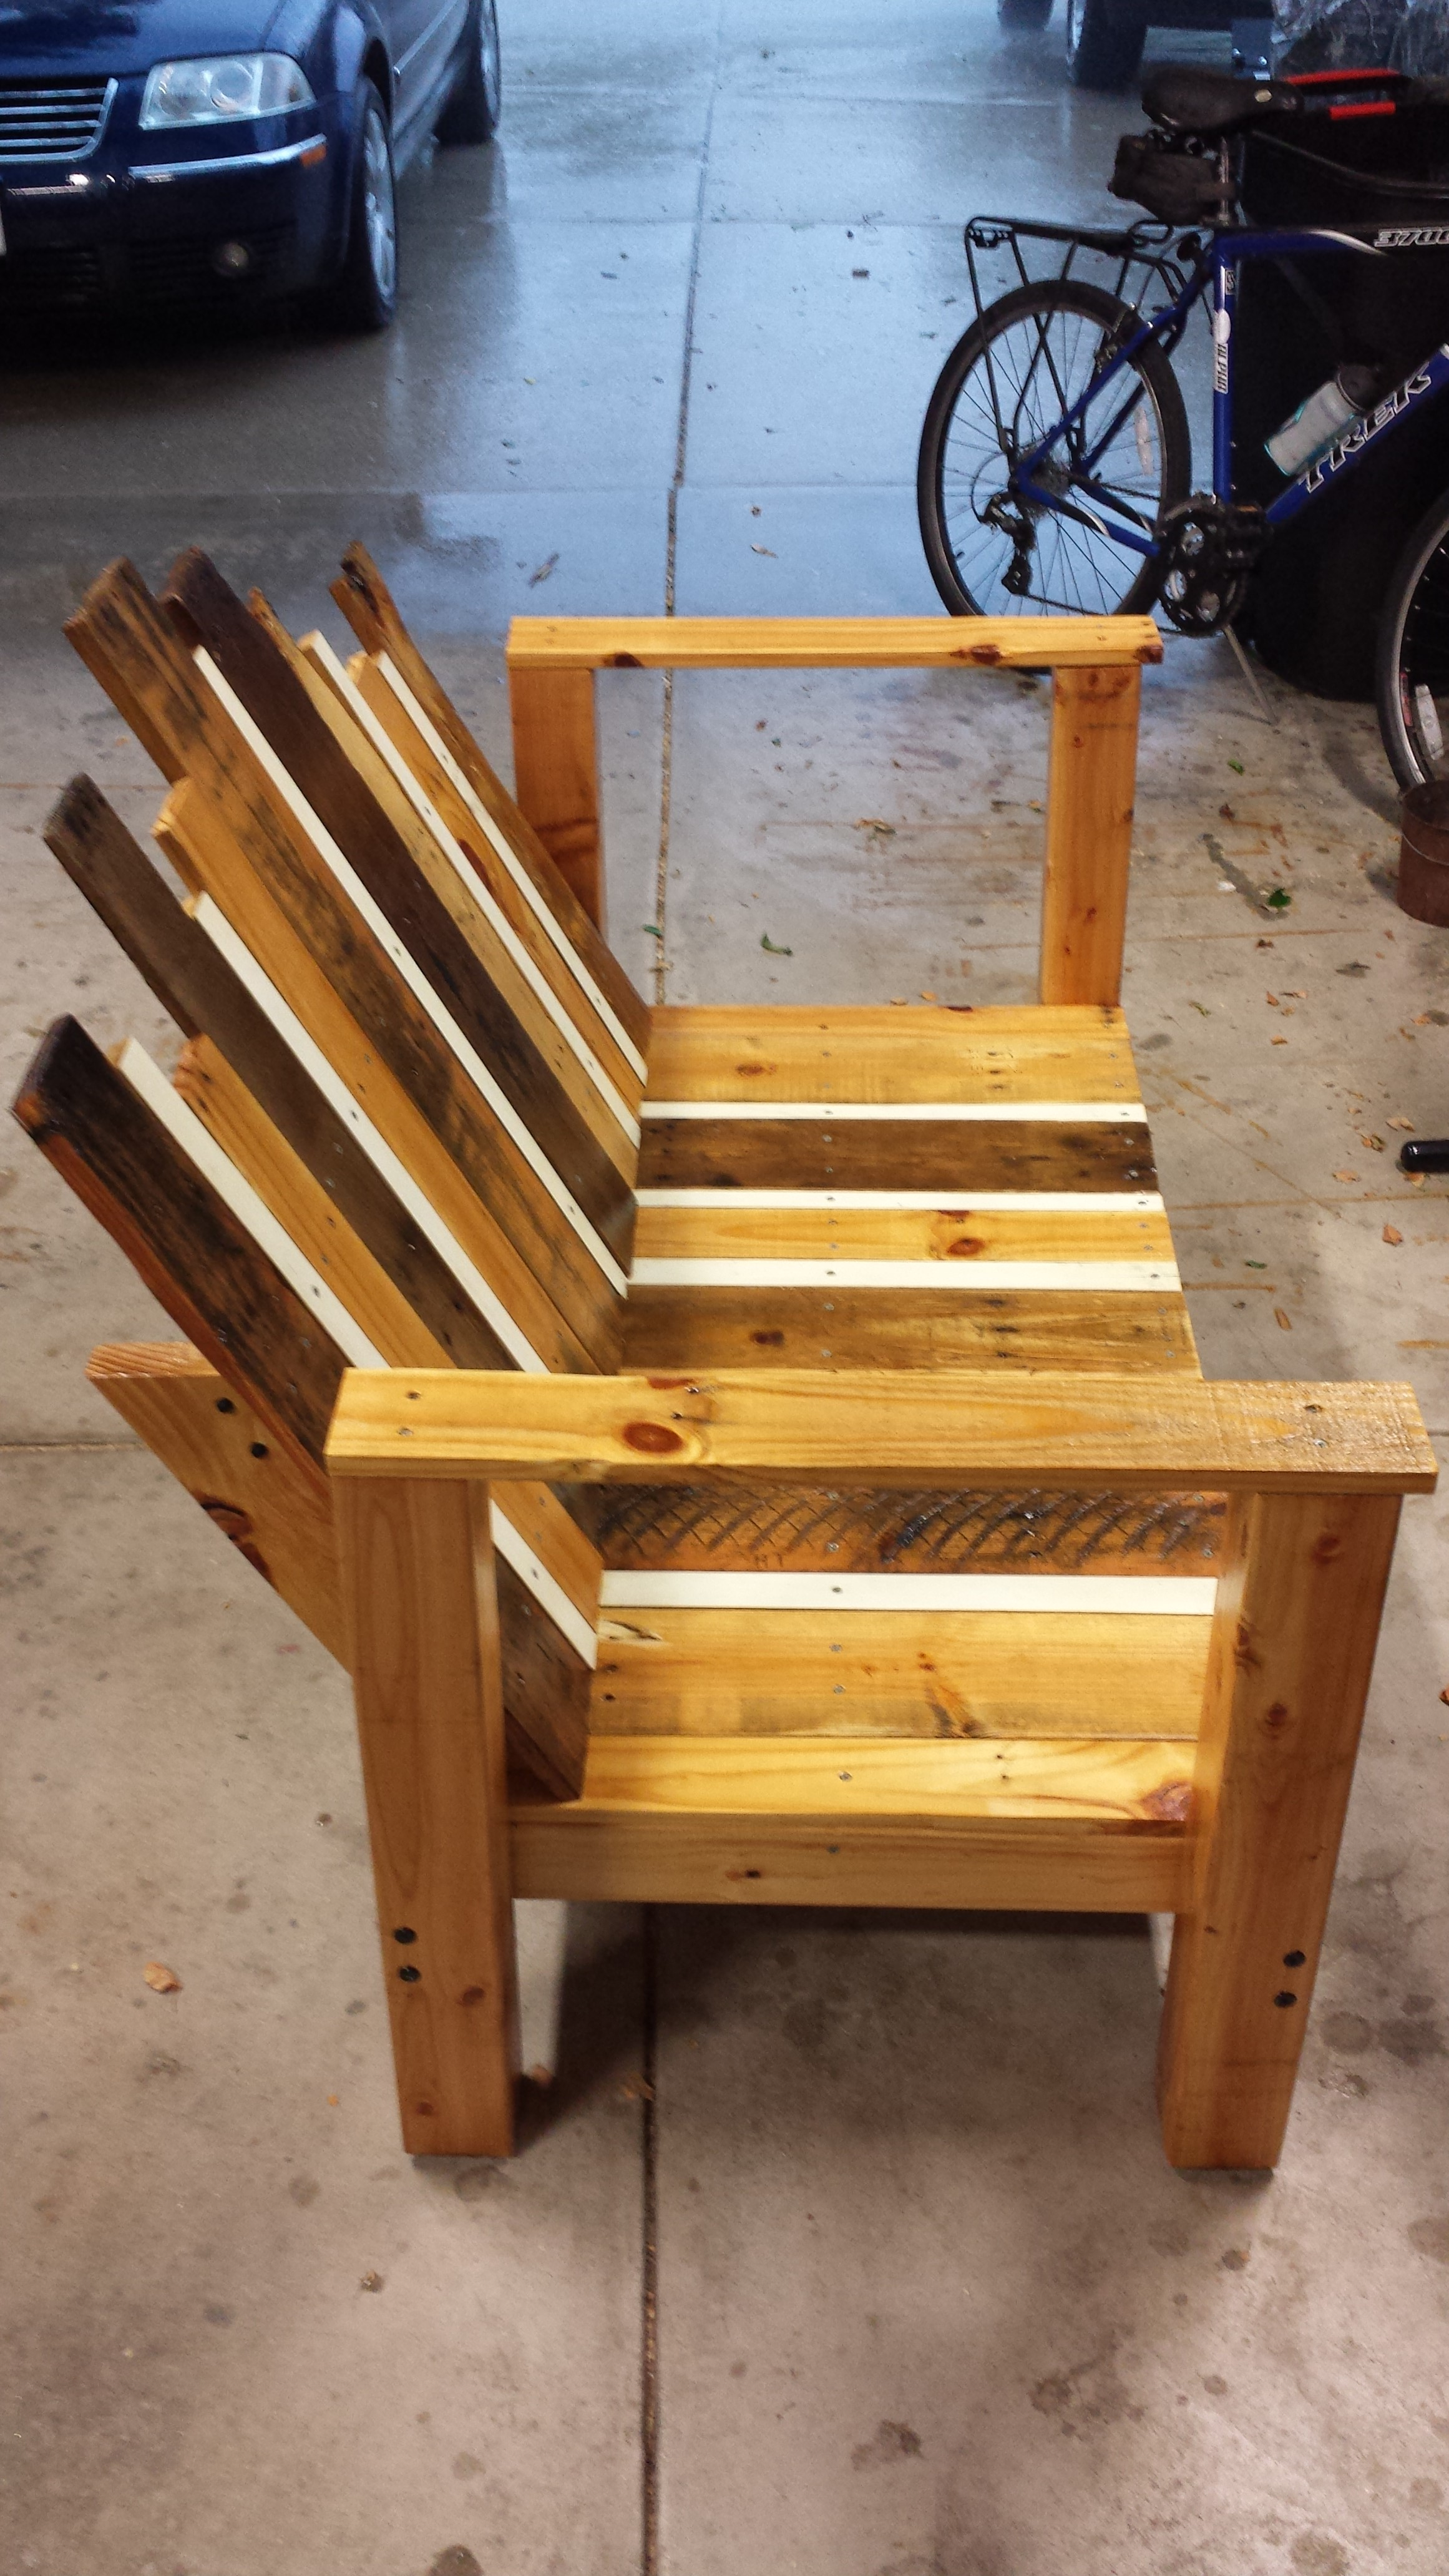 Picture of Staining and Varnishing